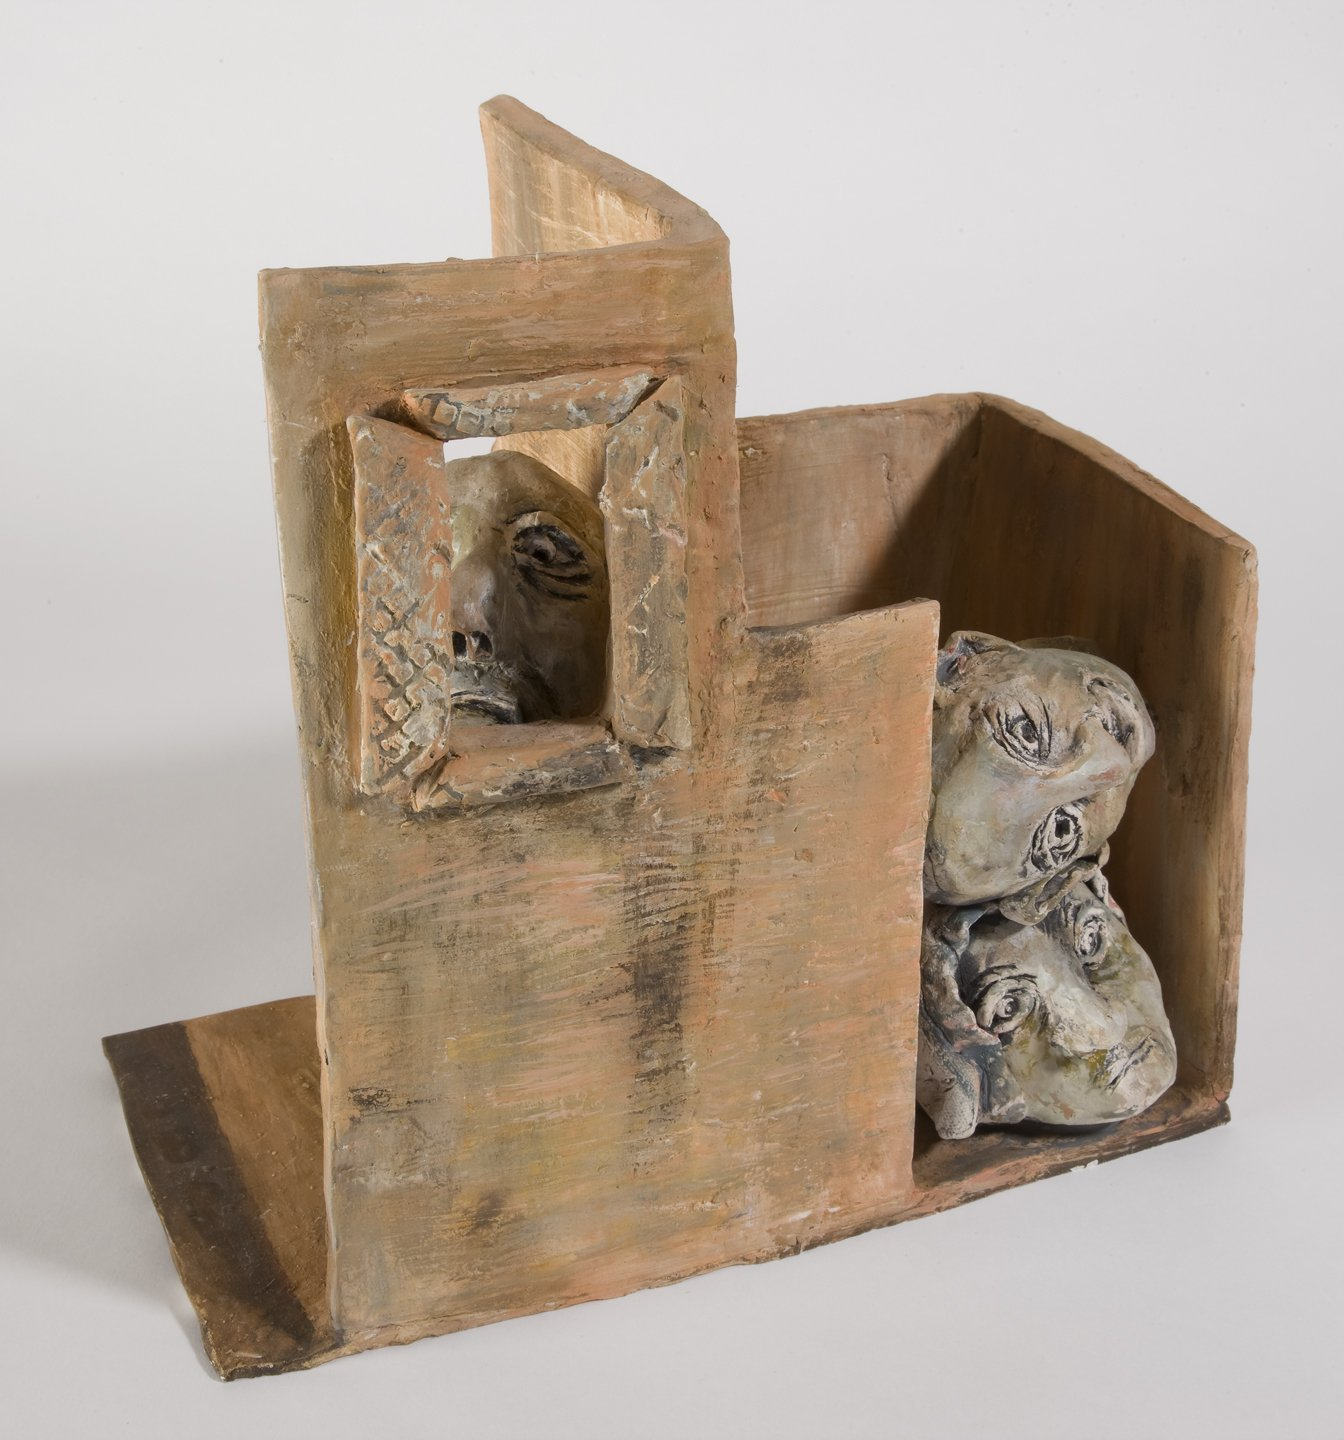 """Dwellings"" by Margie Kelk, Ceramic, Photo credit: Steven Crainford, Mud Season Review"